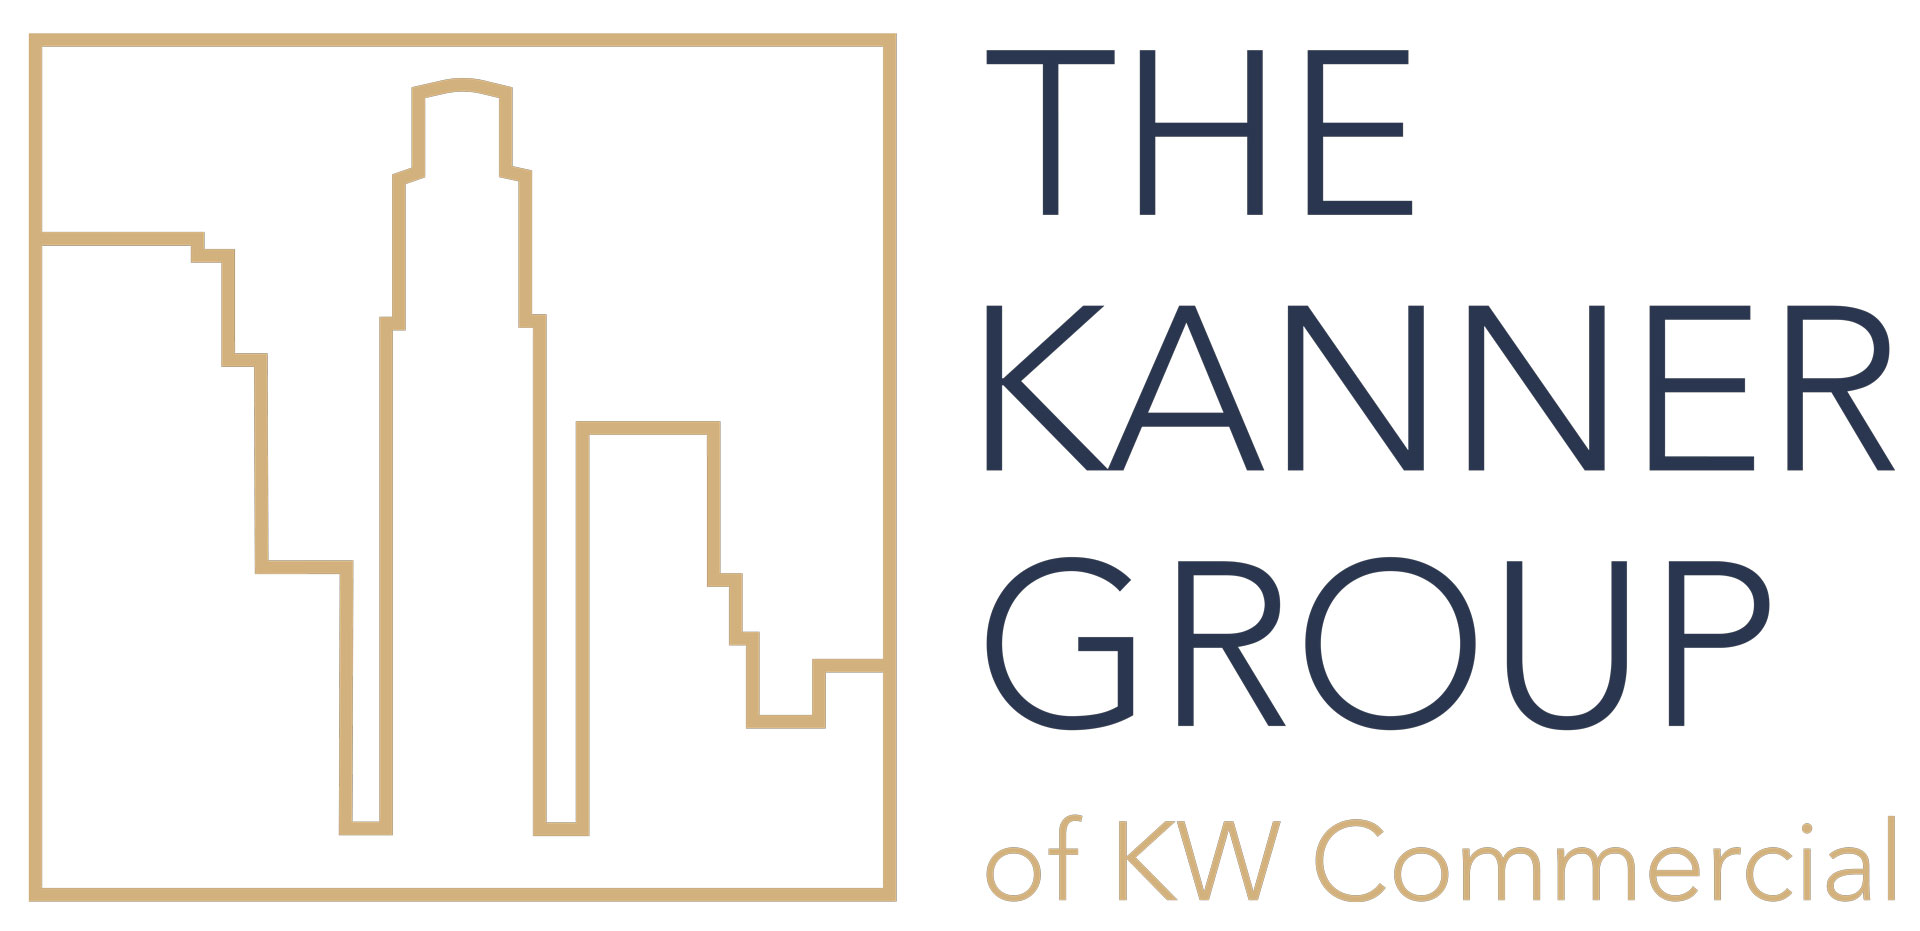 The Kanner Group of KW Commercial logo